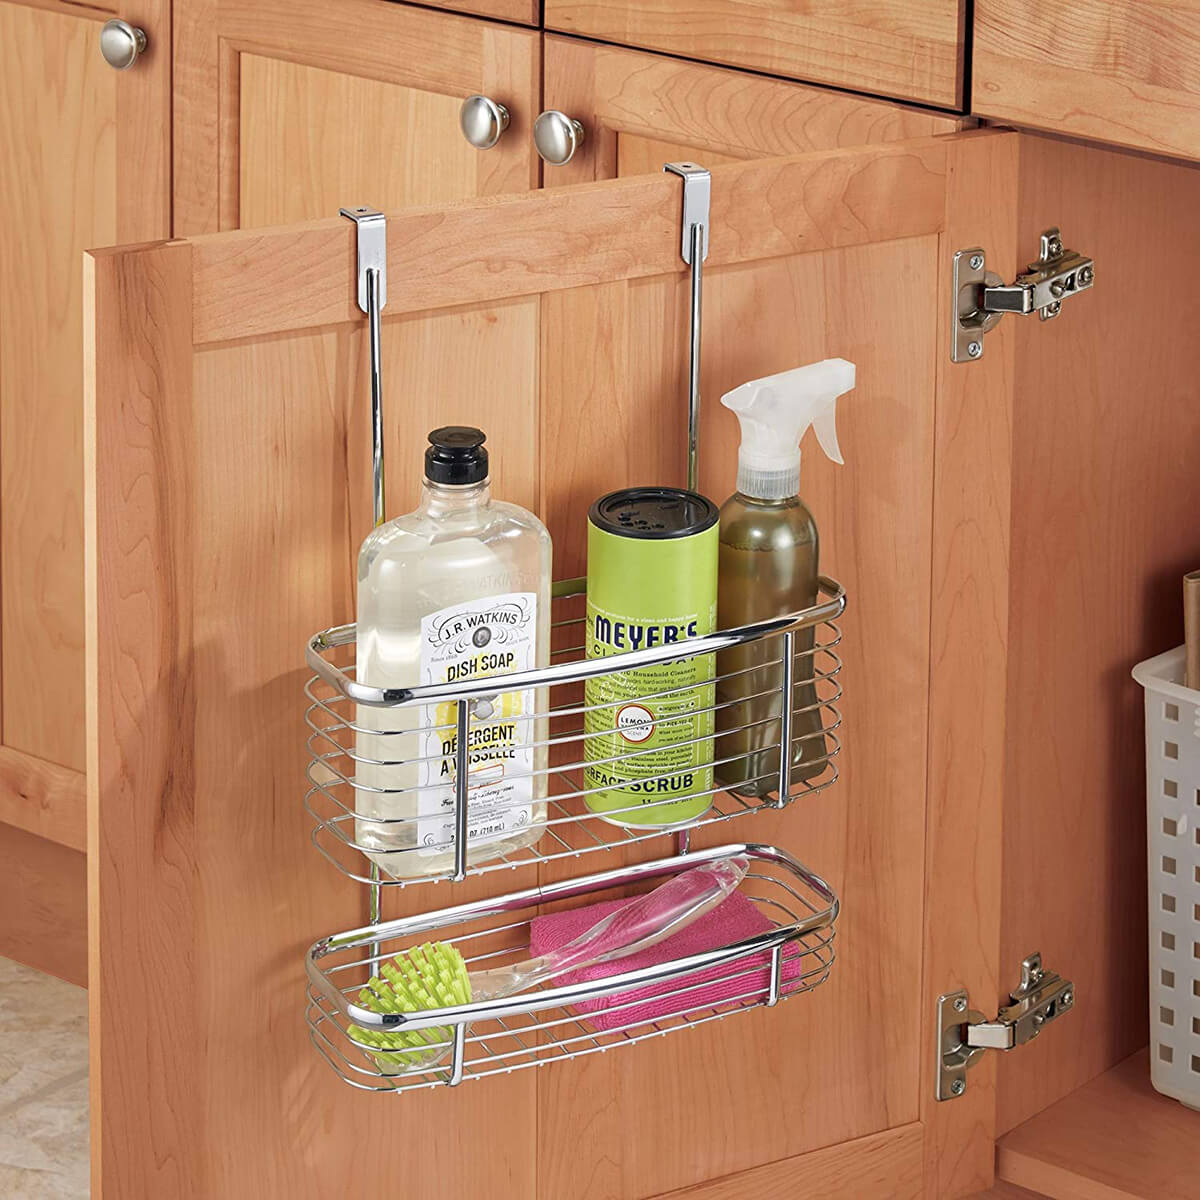 Hanging Cabinet Storage Basket Organizer Product for Kitchen